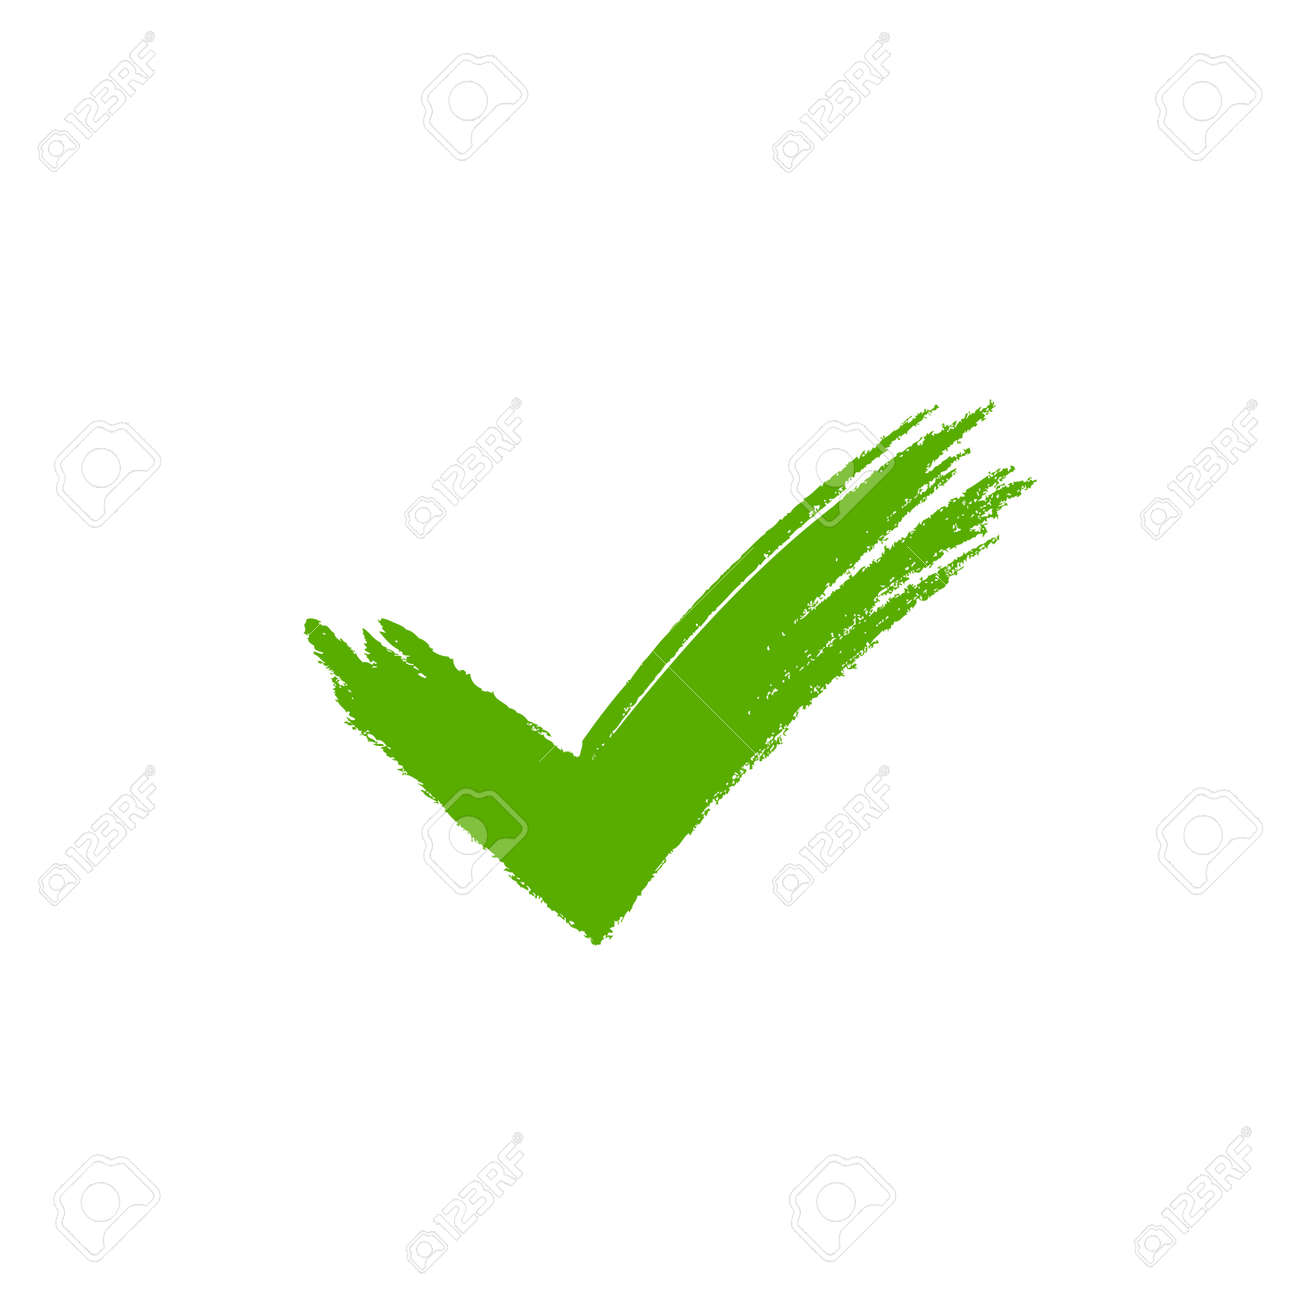 Tick sign element. Green grunge checkmark icon, isolated on white background. Mark graphic design. OK button for vote, decision, web. Symbol of correct, check, approved. Vector illustration - 70806756